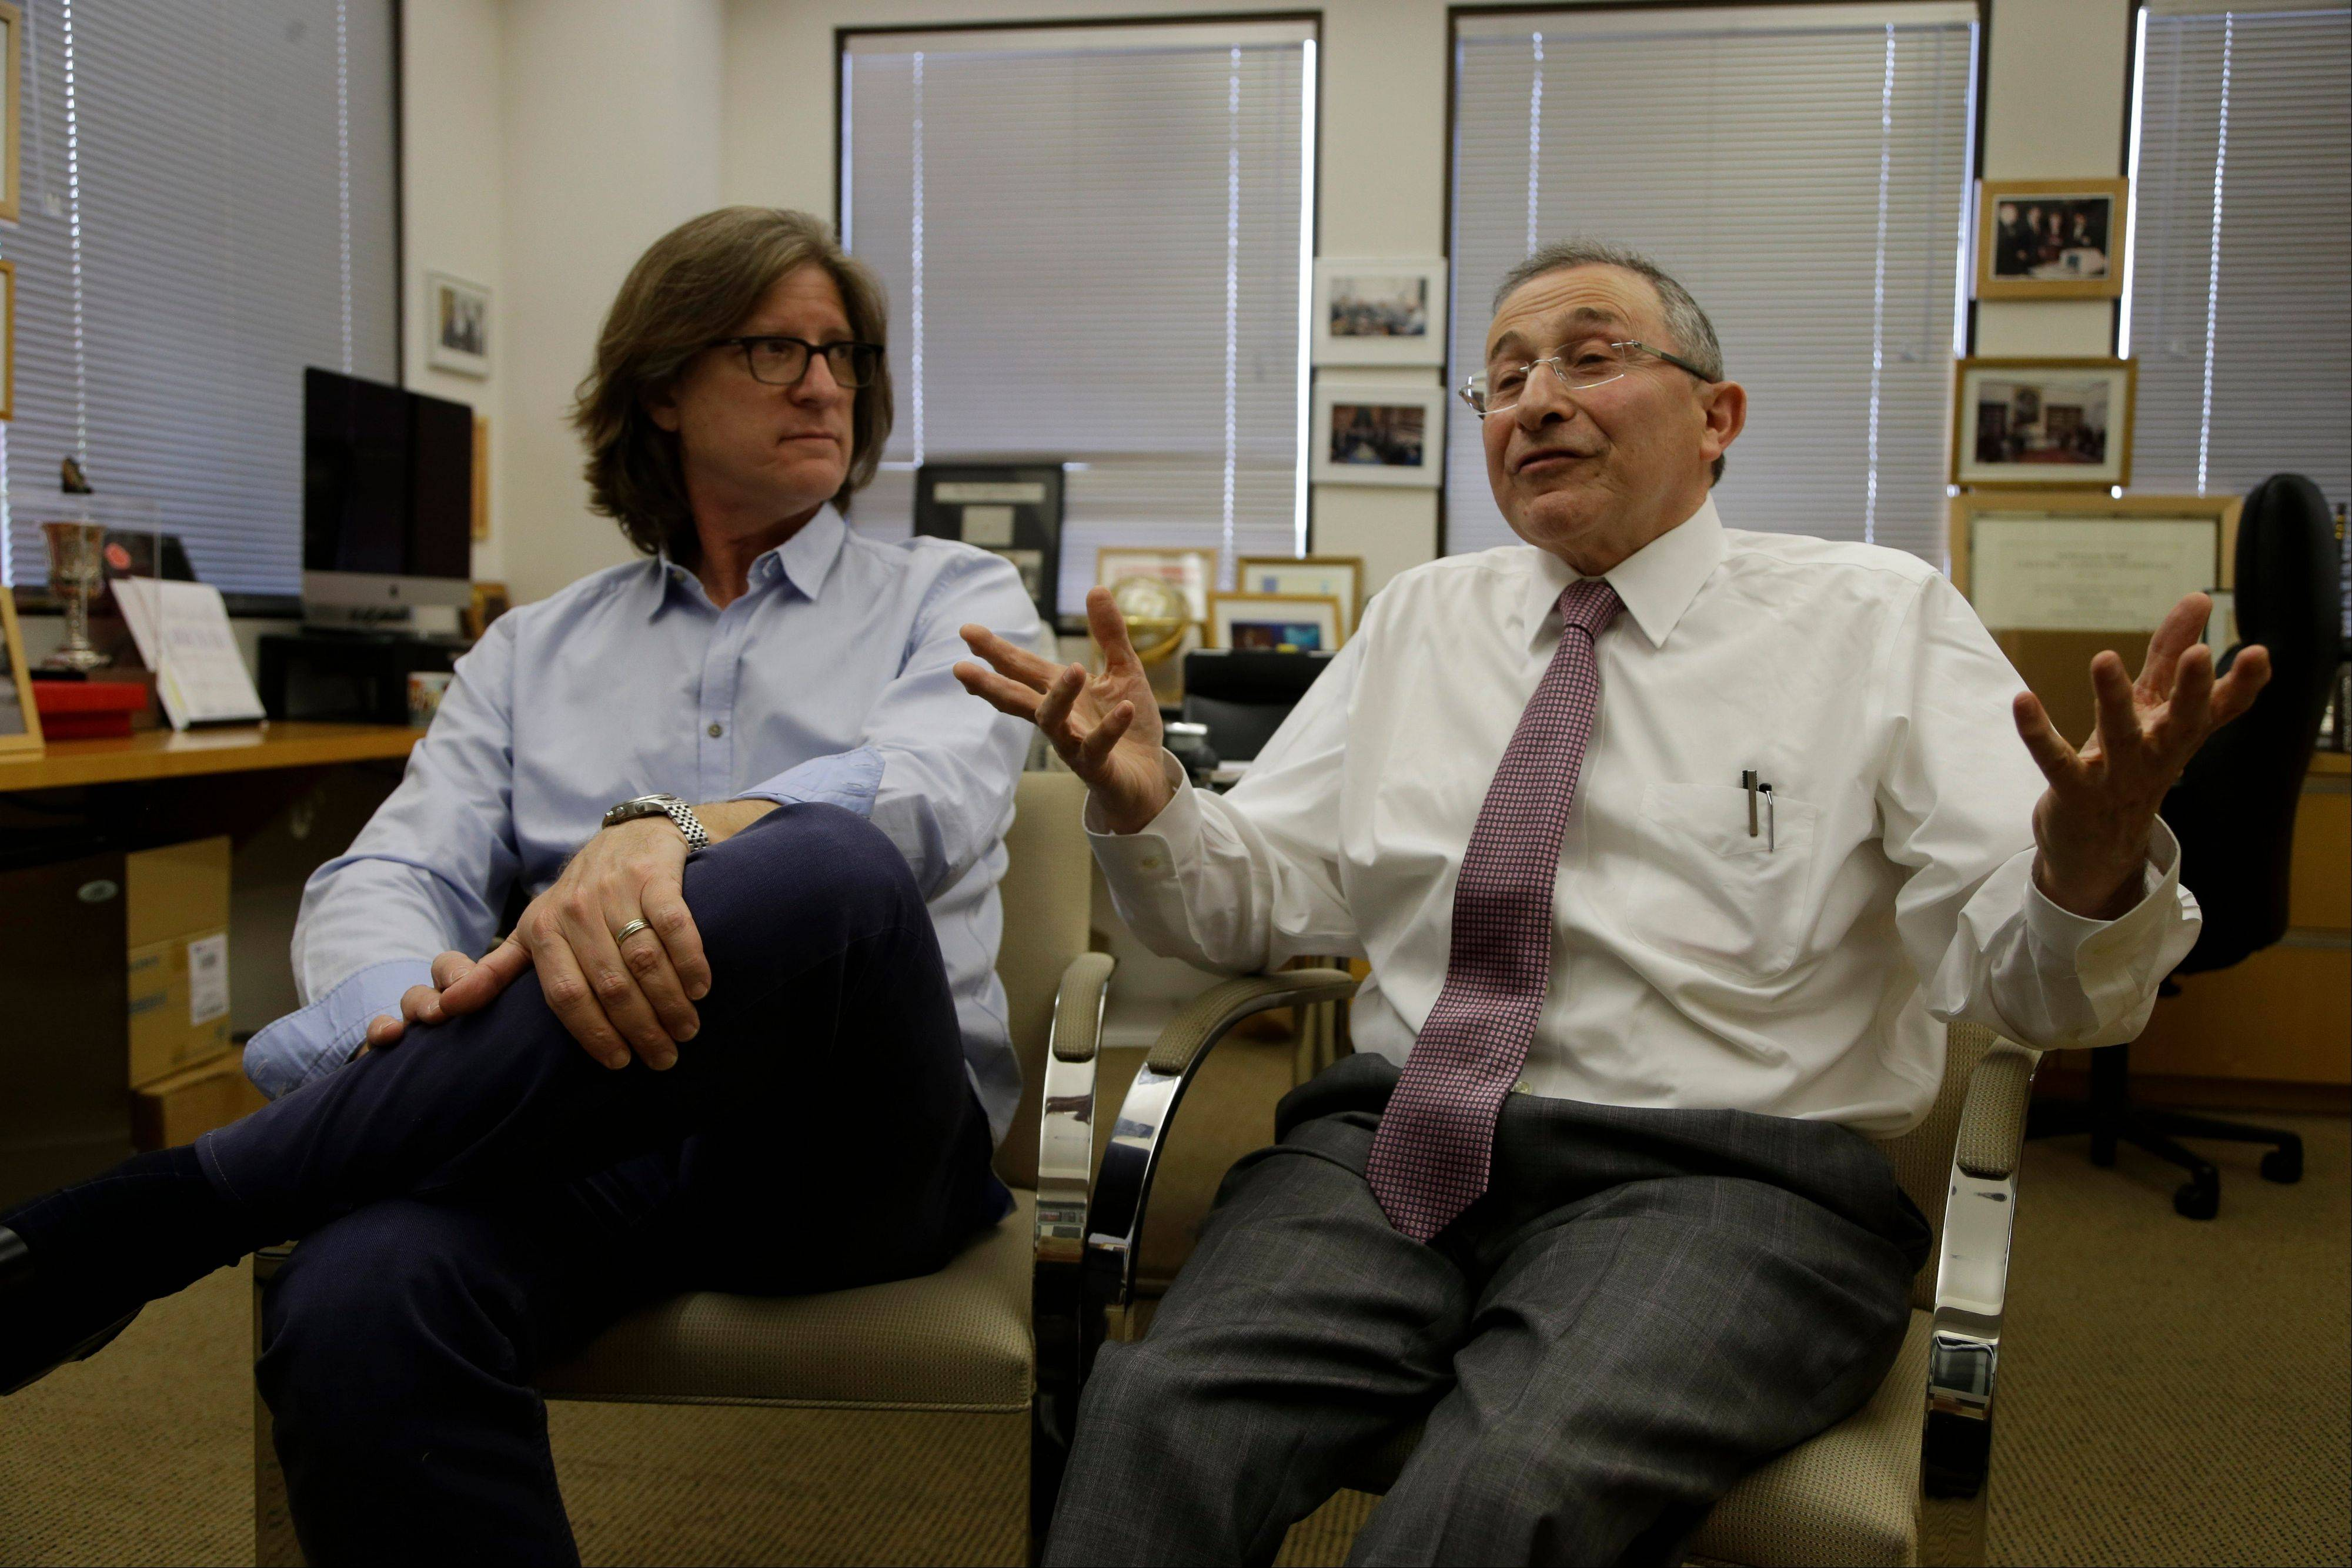 Founder Rabbi Marvin Hier, right, and Moriah Films director Richard Trank during an interview at the Wiesenthal Center in Los Angeles. Hier said it's important for the Wiesenthal Center to put Jewish history on film to reach worldwide audiences for years to come.